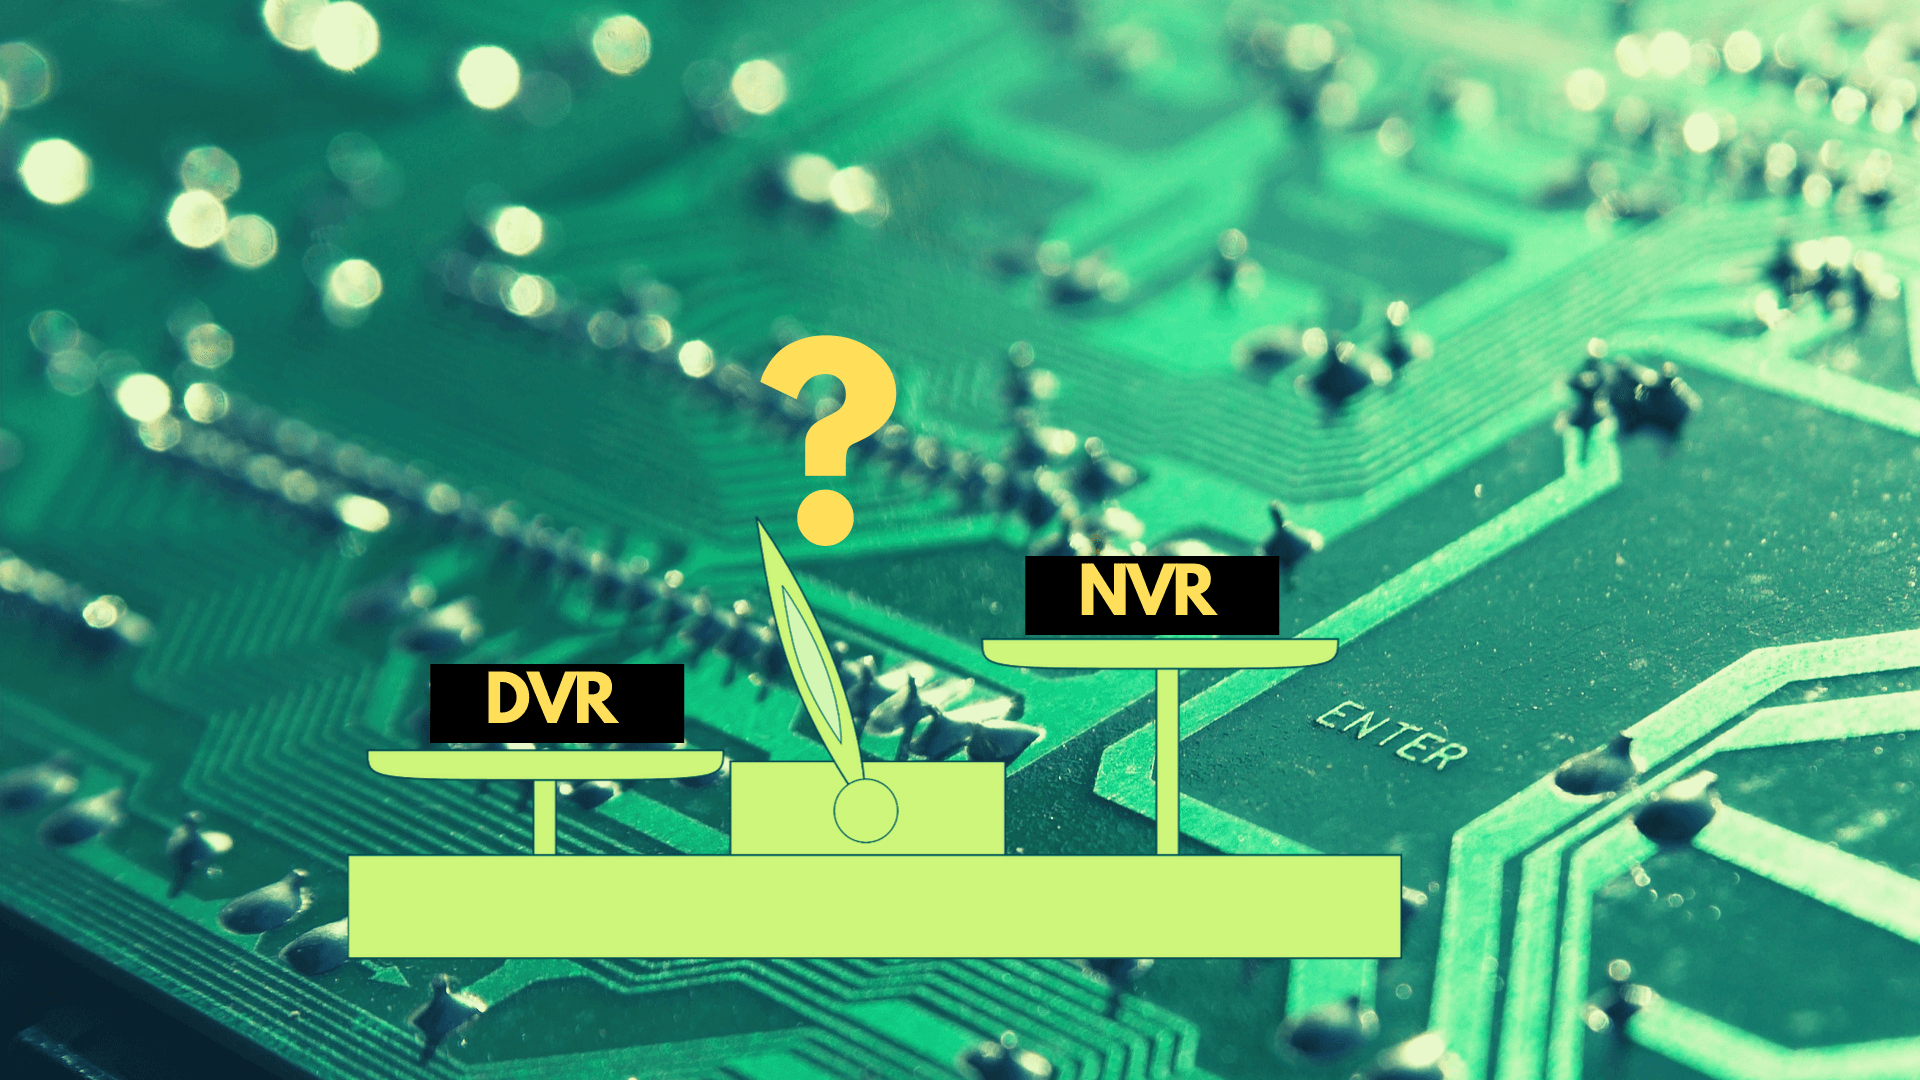 What security system do i need NVR vs DVR